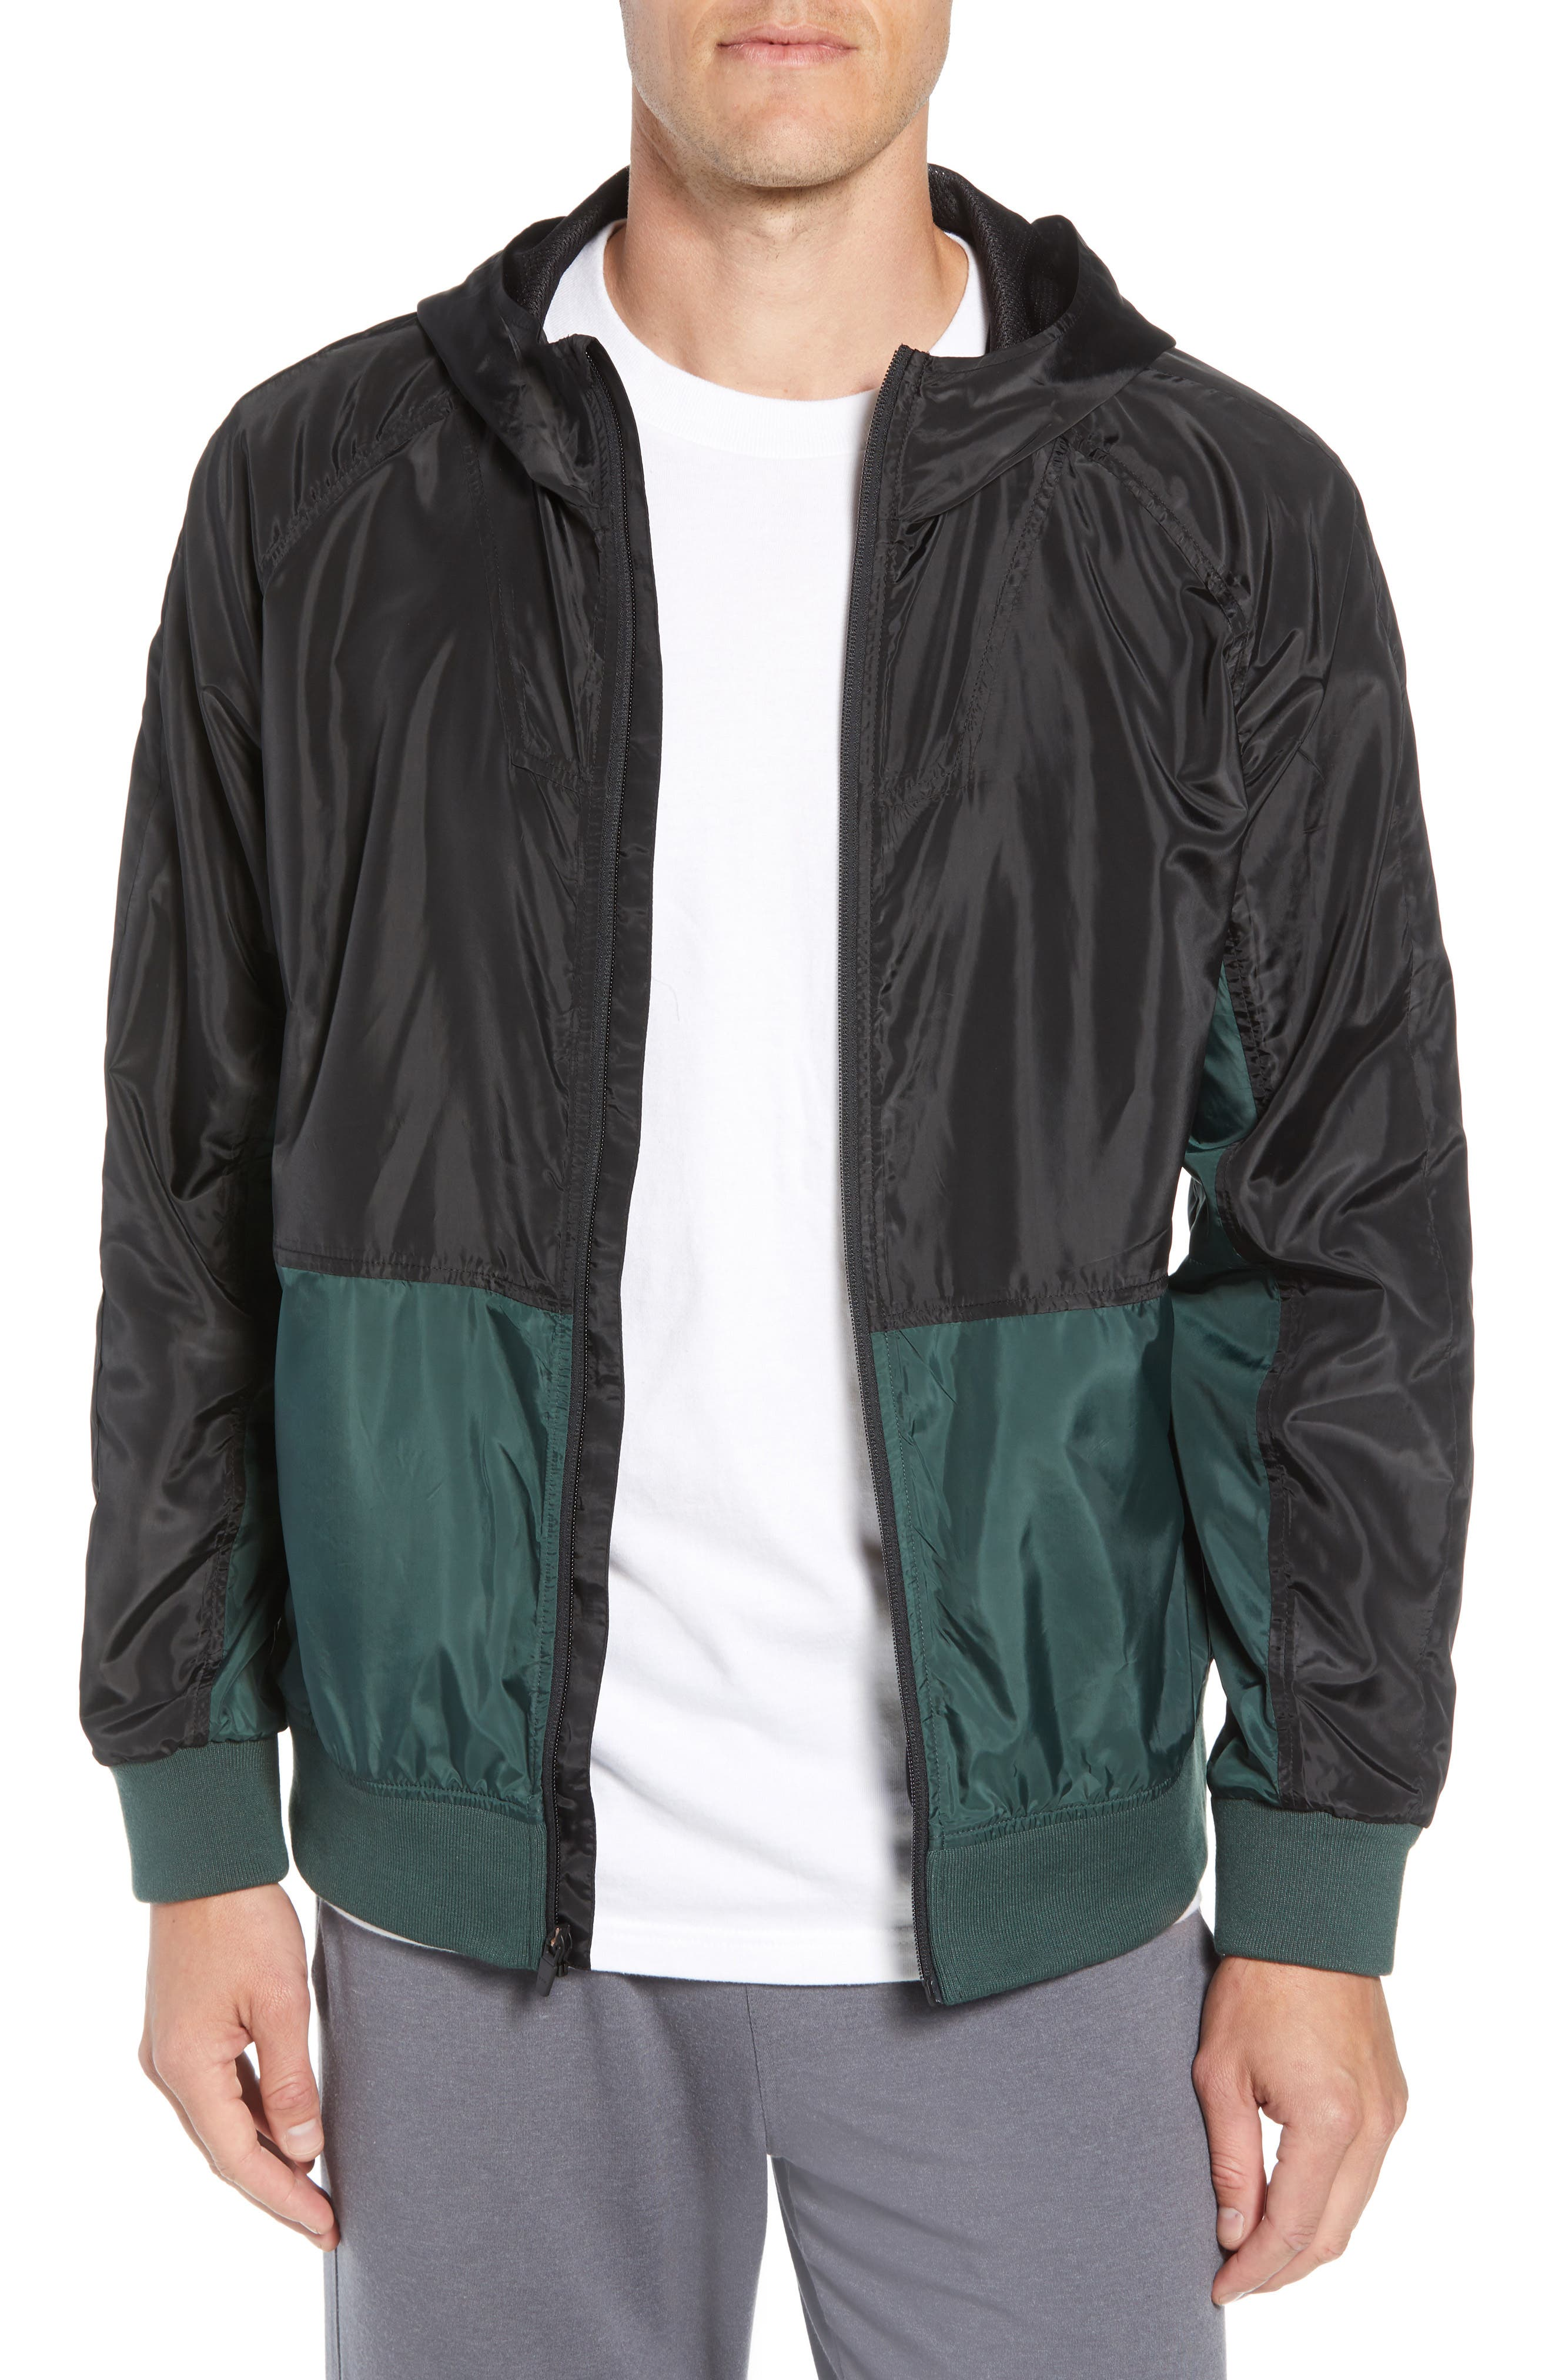 Colorblock Hooded Windbreaker Jacket,                             Main thumbnail 1, color,                             BLACK GREEN ODINITE